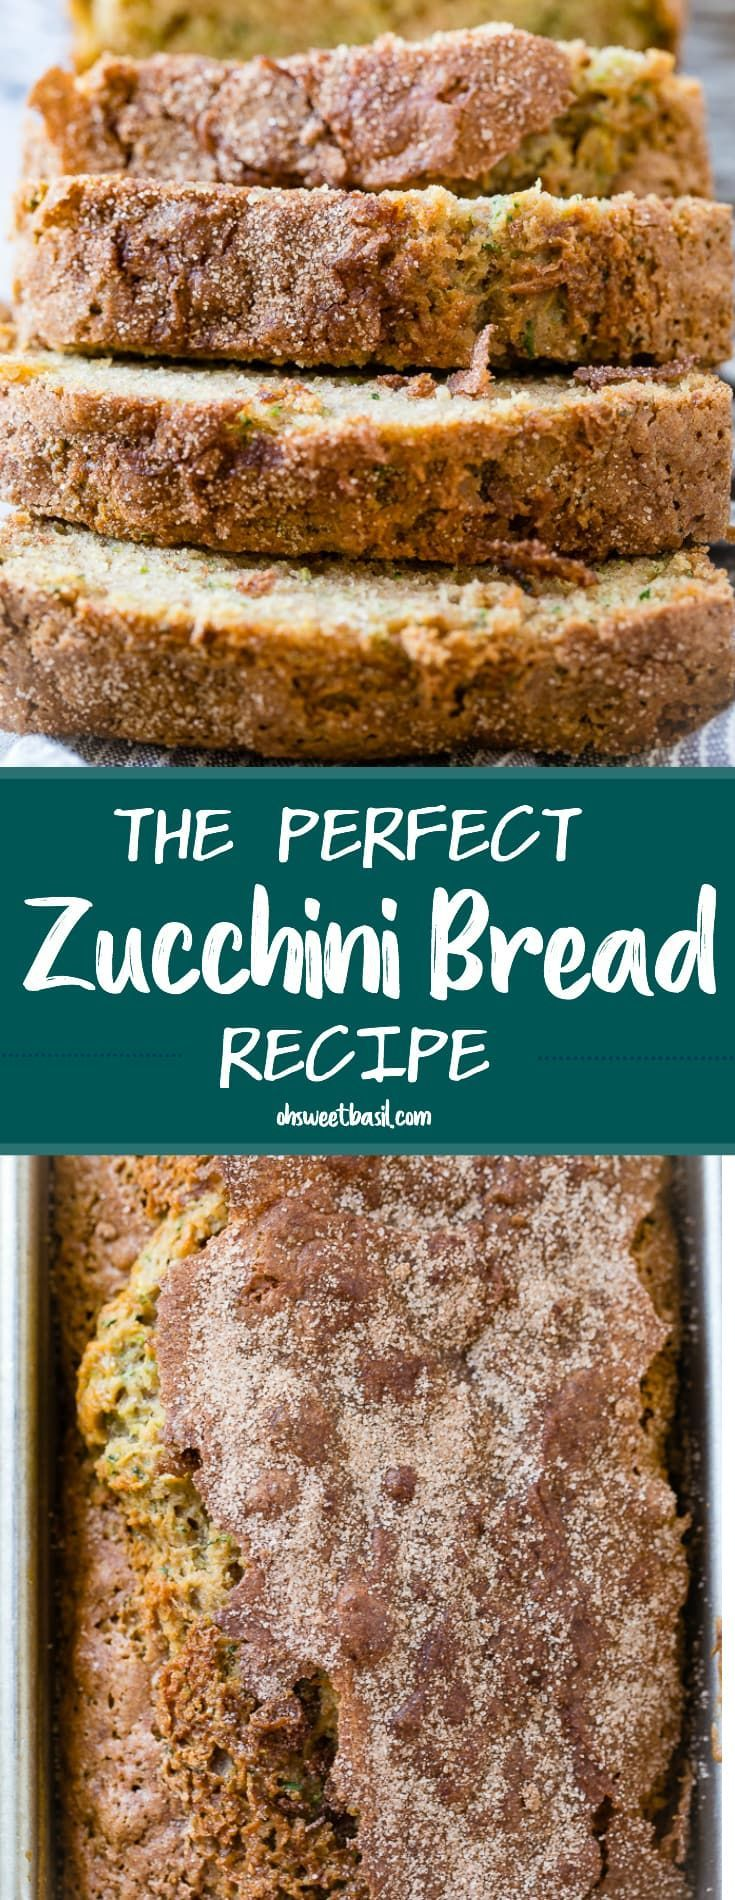 I hated zucchini bread when I was little I searched for years for a recipe Id love as an adult and can honestly say this is The Perfect Zucchini Bread Recipe  179862...